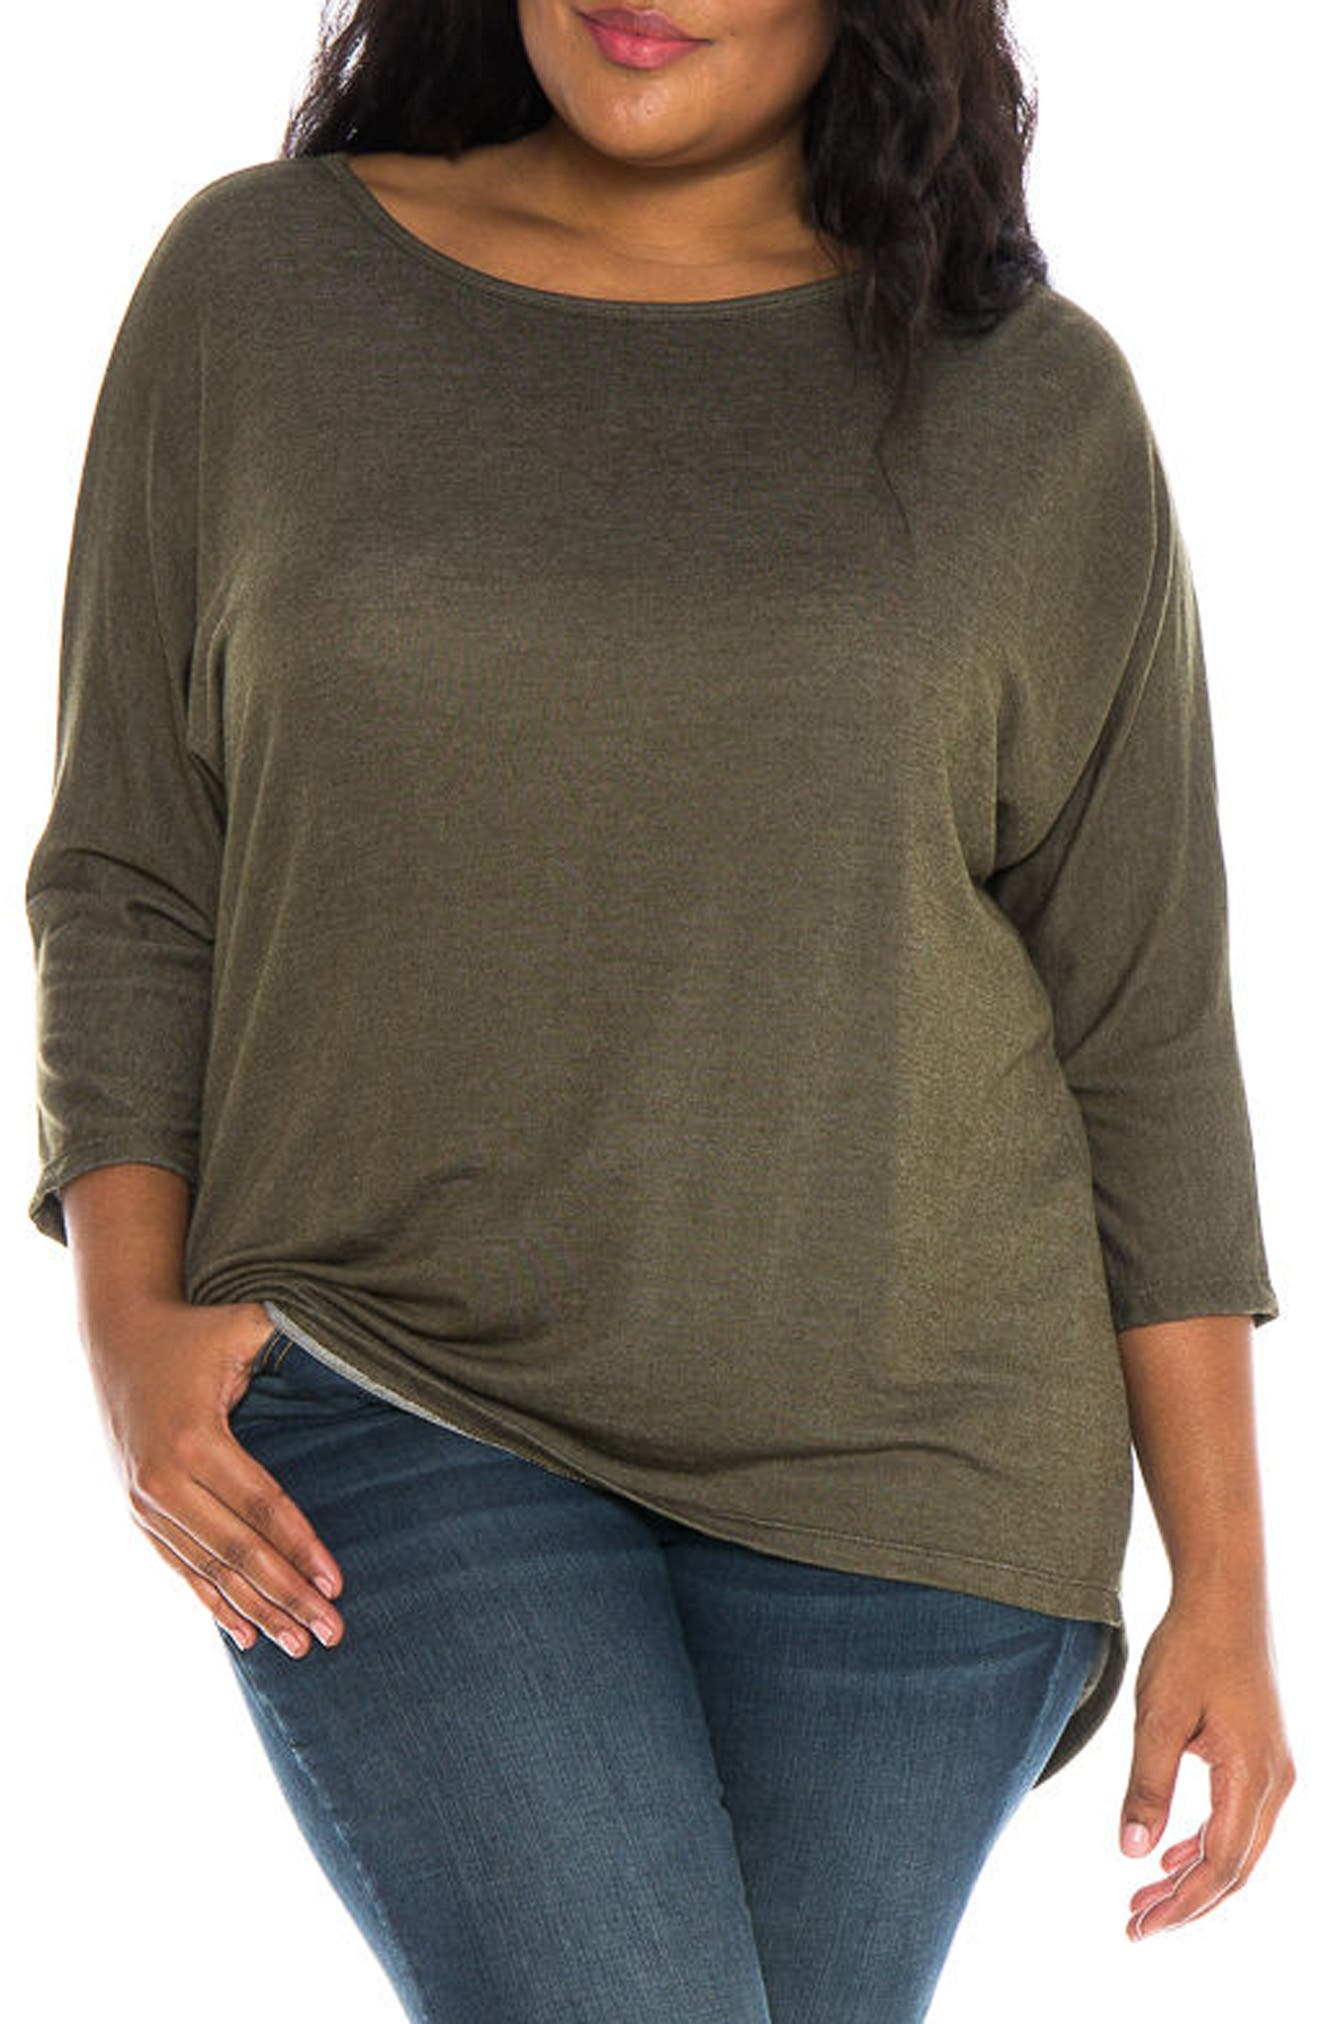 Main Image - SLINK Jeans Dolman Sleeve Top (Plus Size)